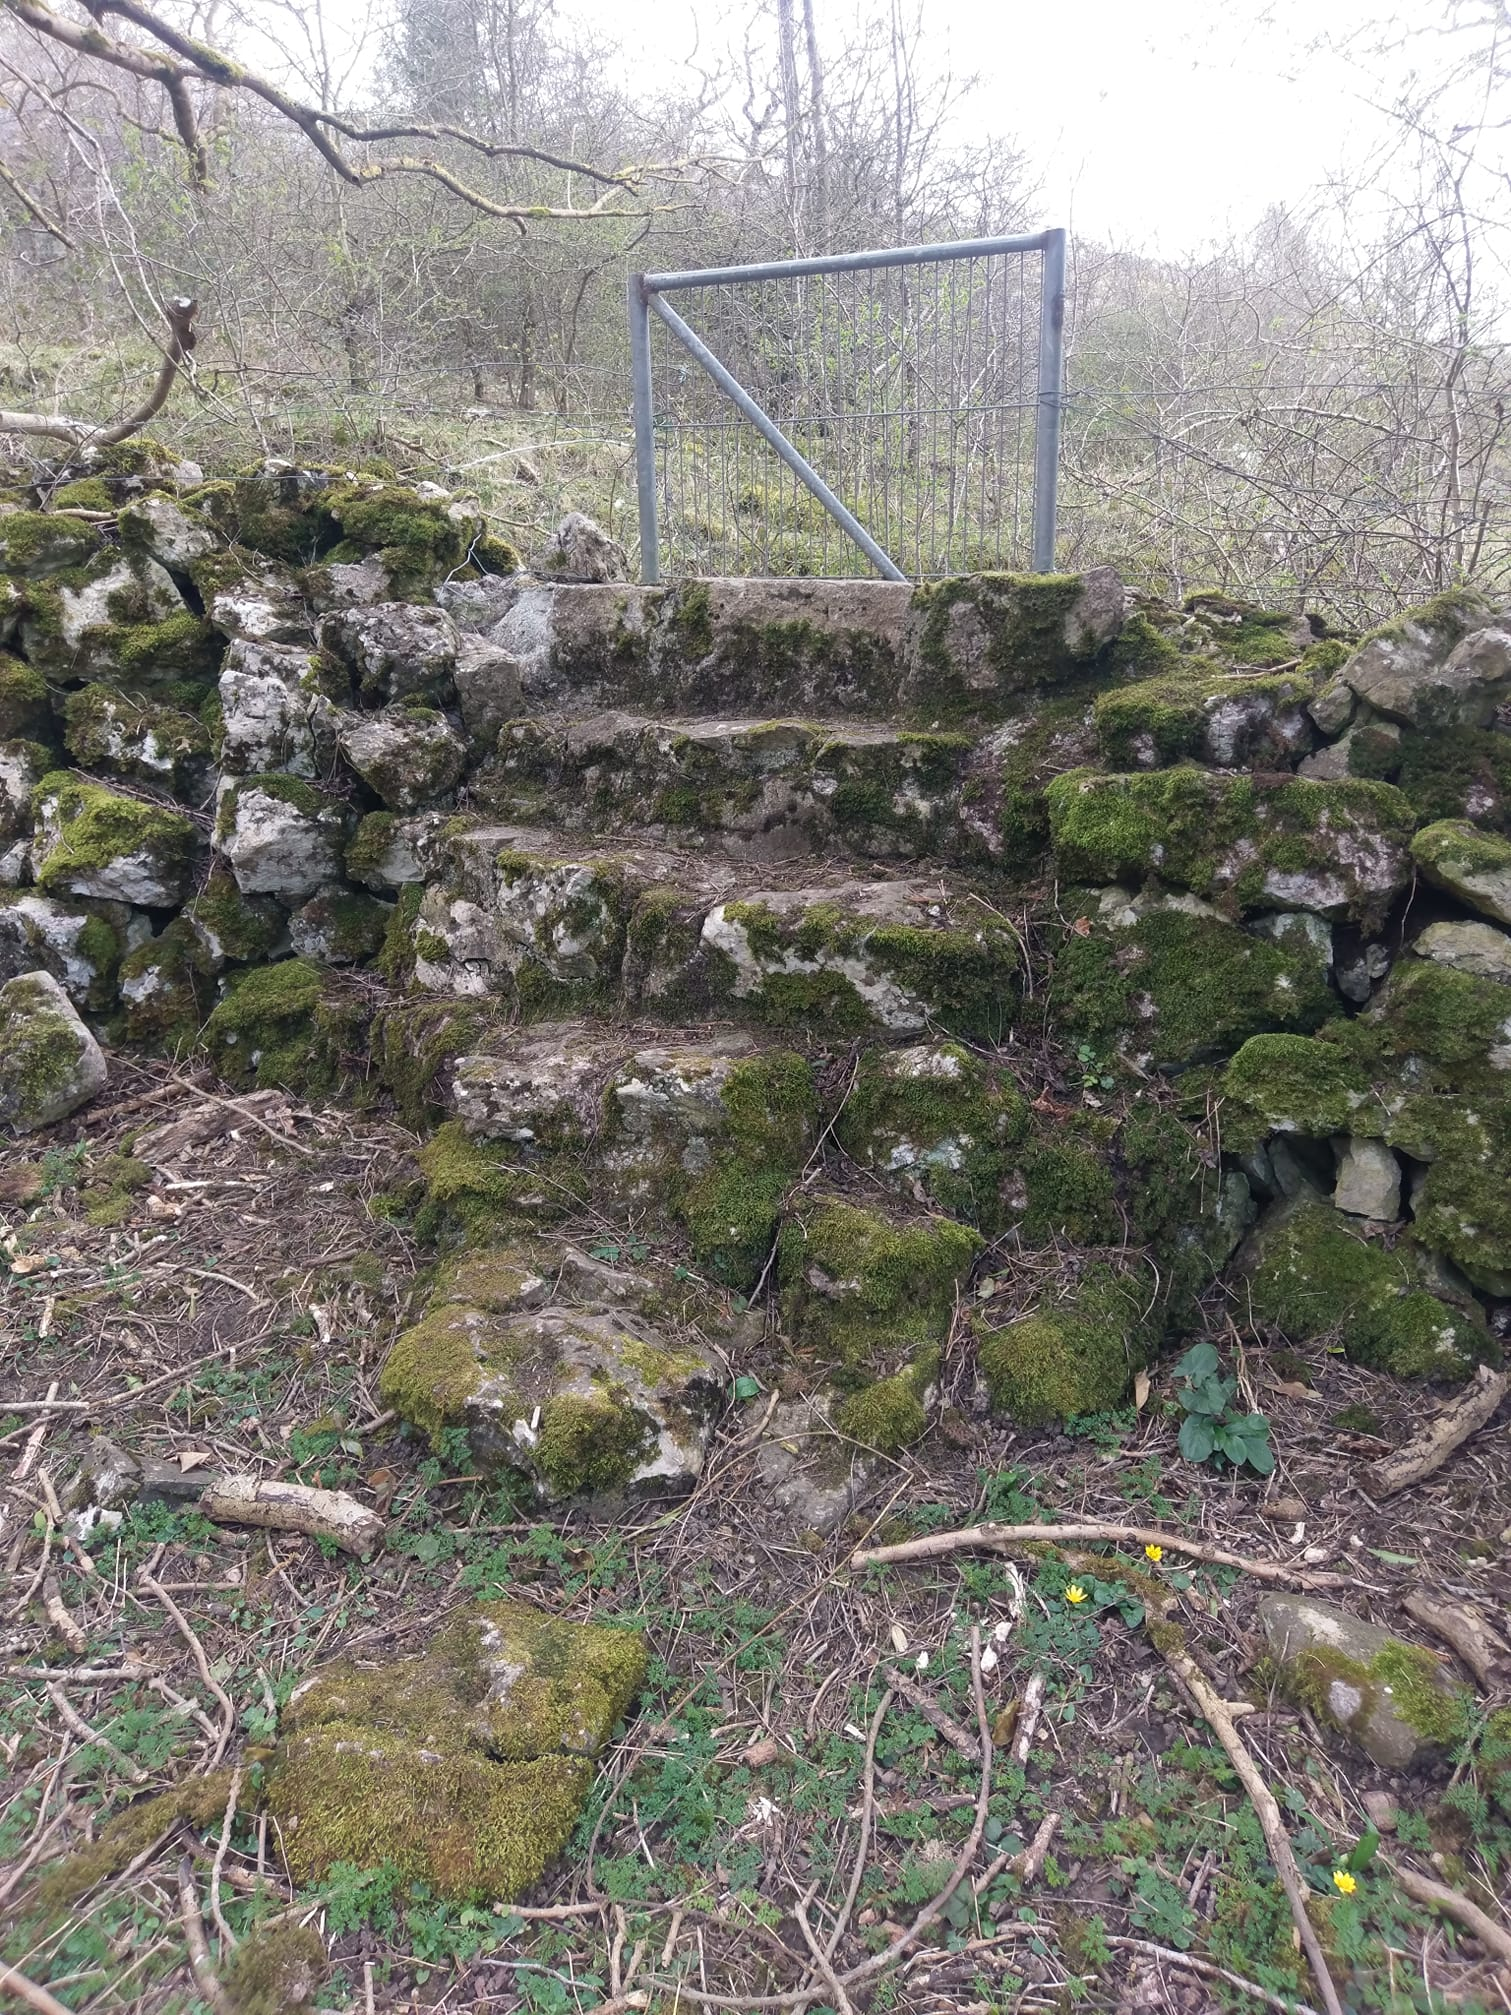 Spotted these lovely lime stone steps today while walking in northwales. North Wales, North West, Wirral, Liverpool & Cheshire UK